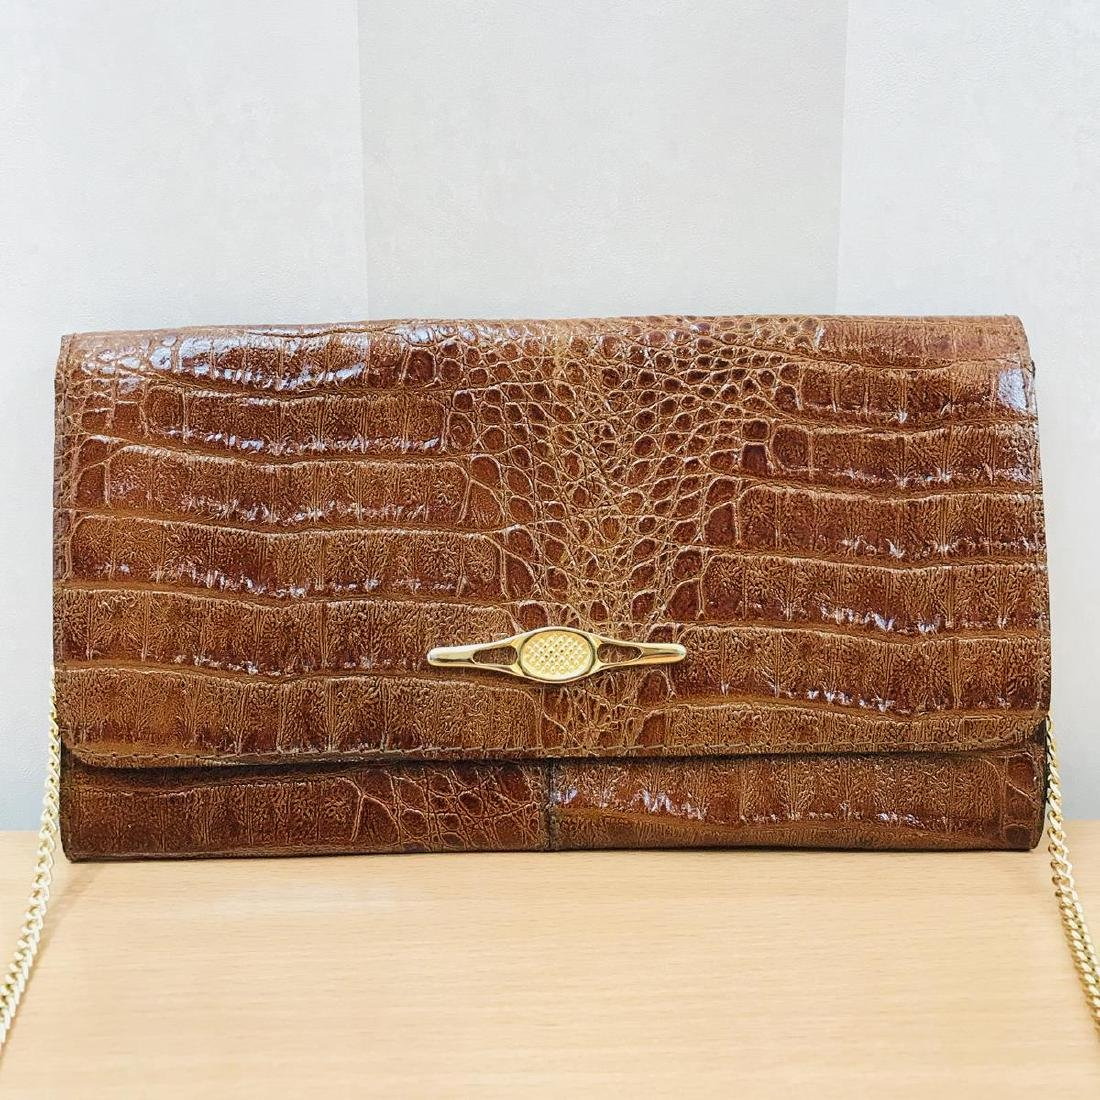 Vintage Crocodile Leather Clutch Bag